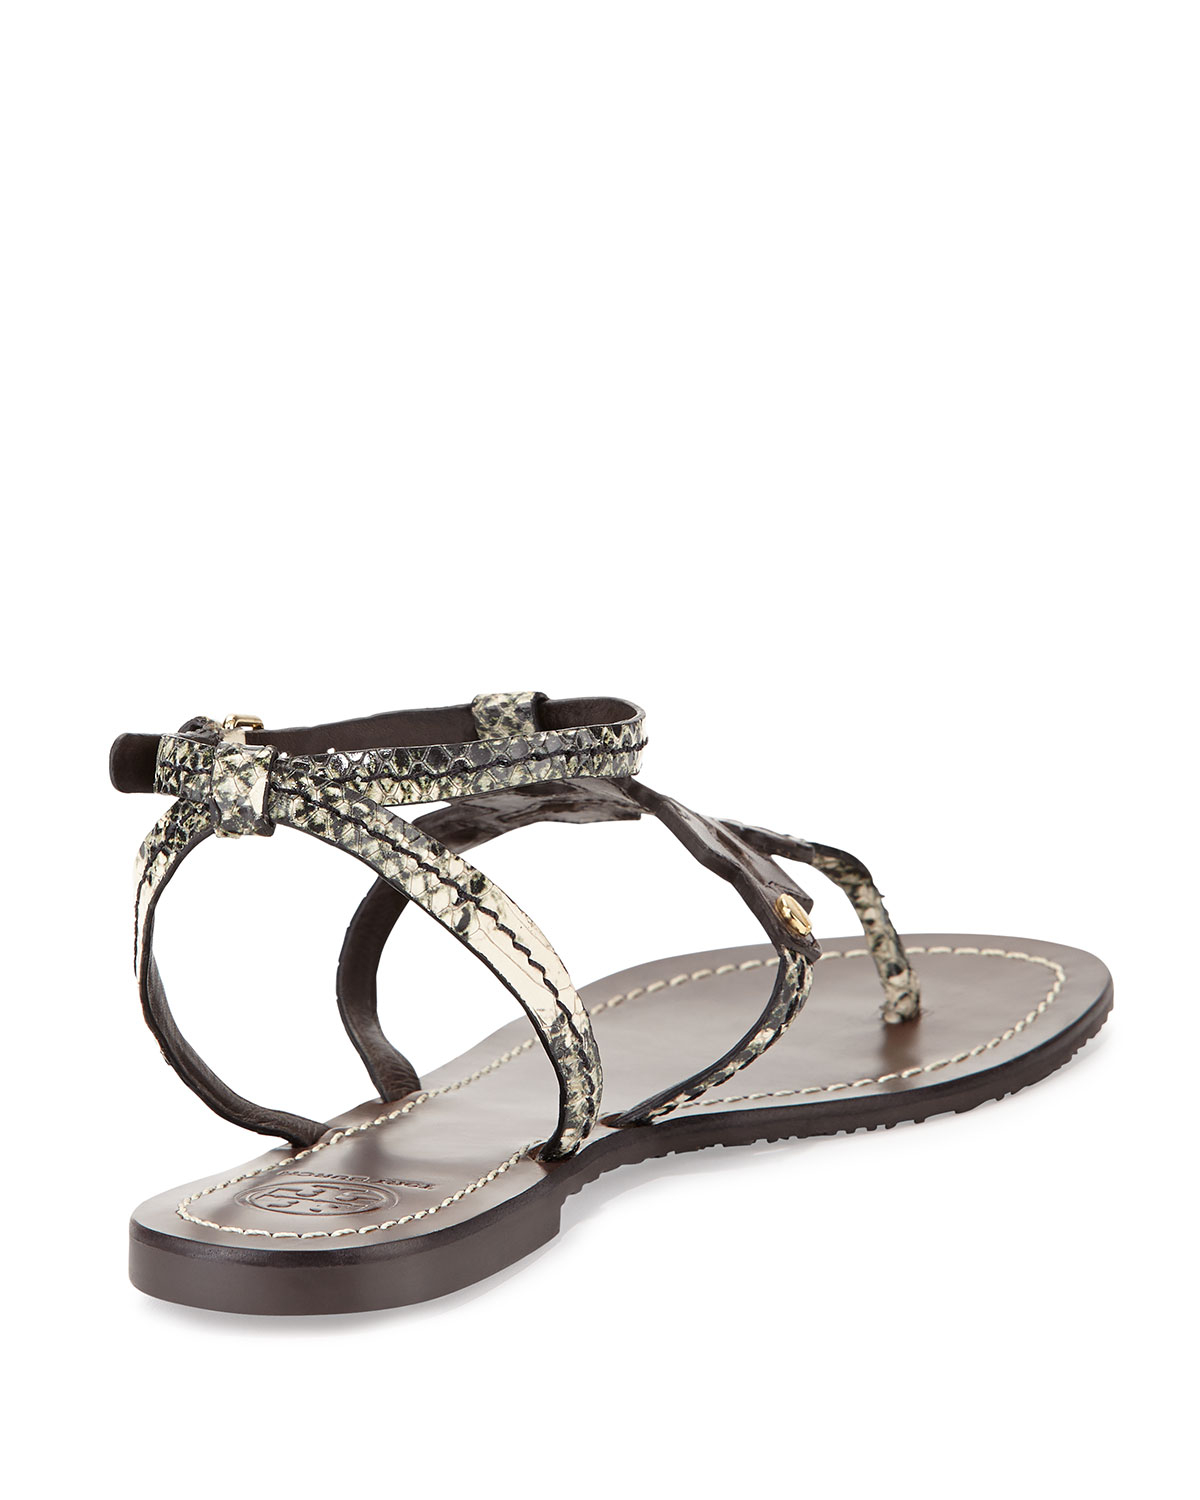 0bf874d91 Lyst - Tory Burch Phoebe Snake-embossed Flat Sandal in Brown